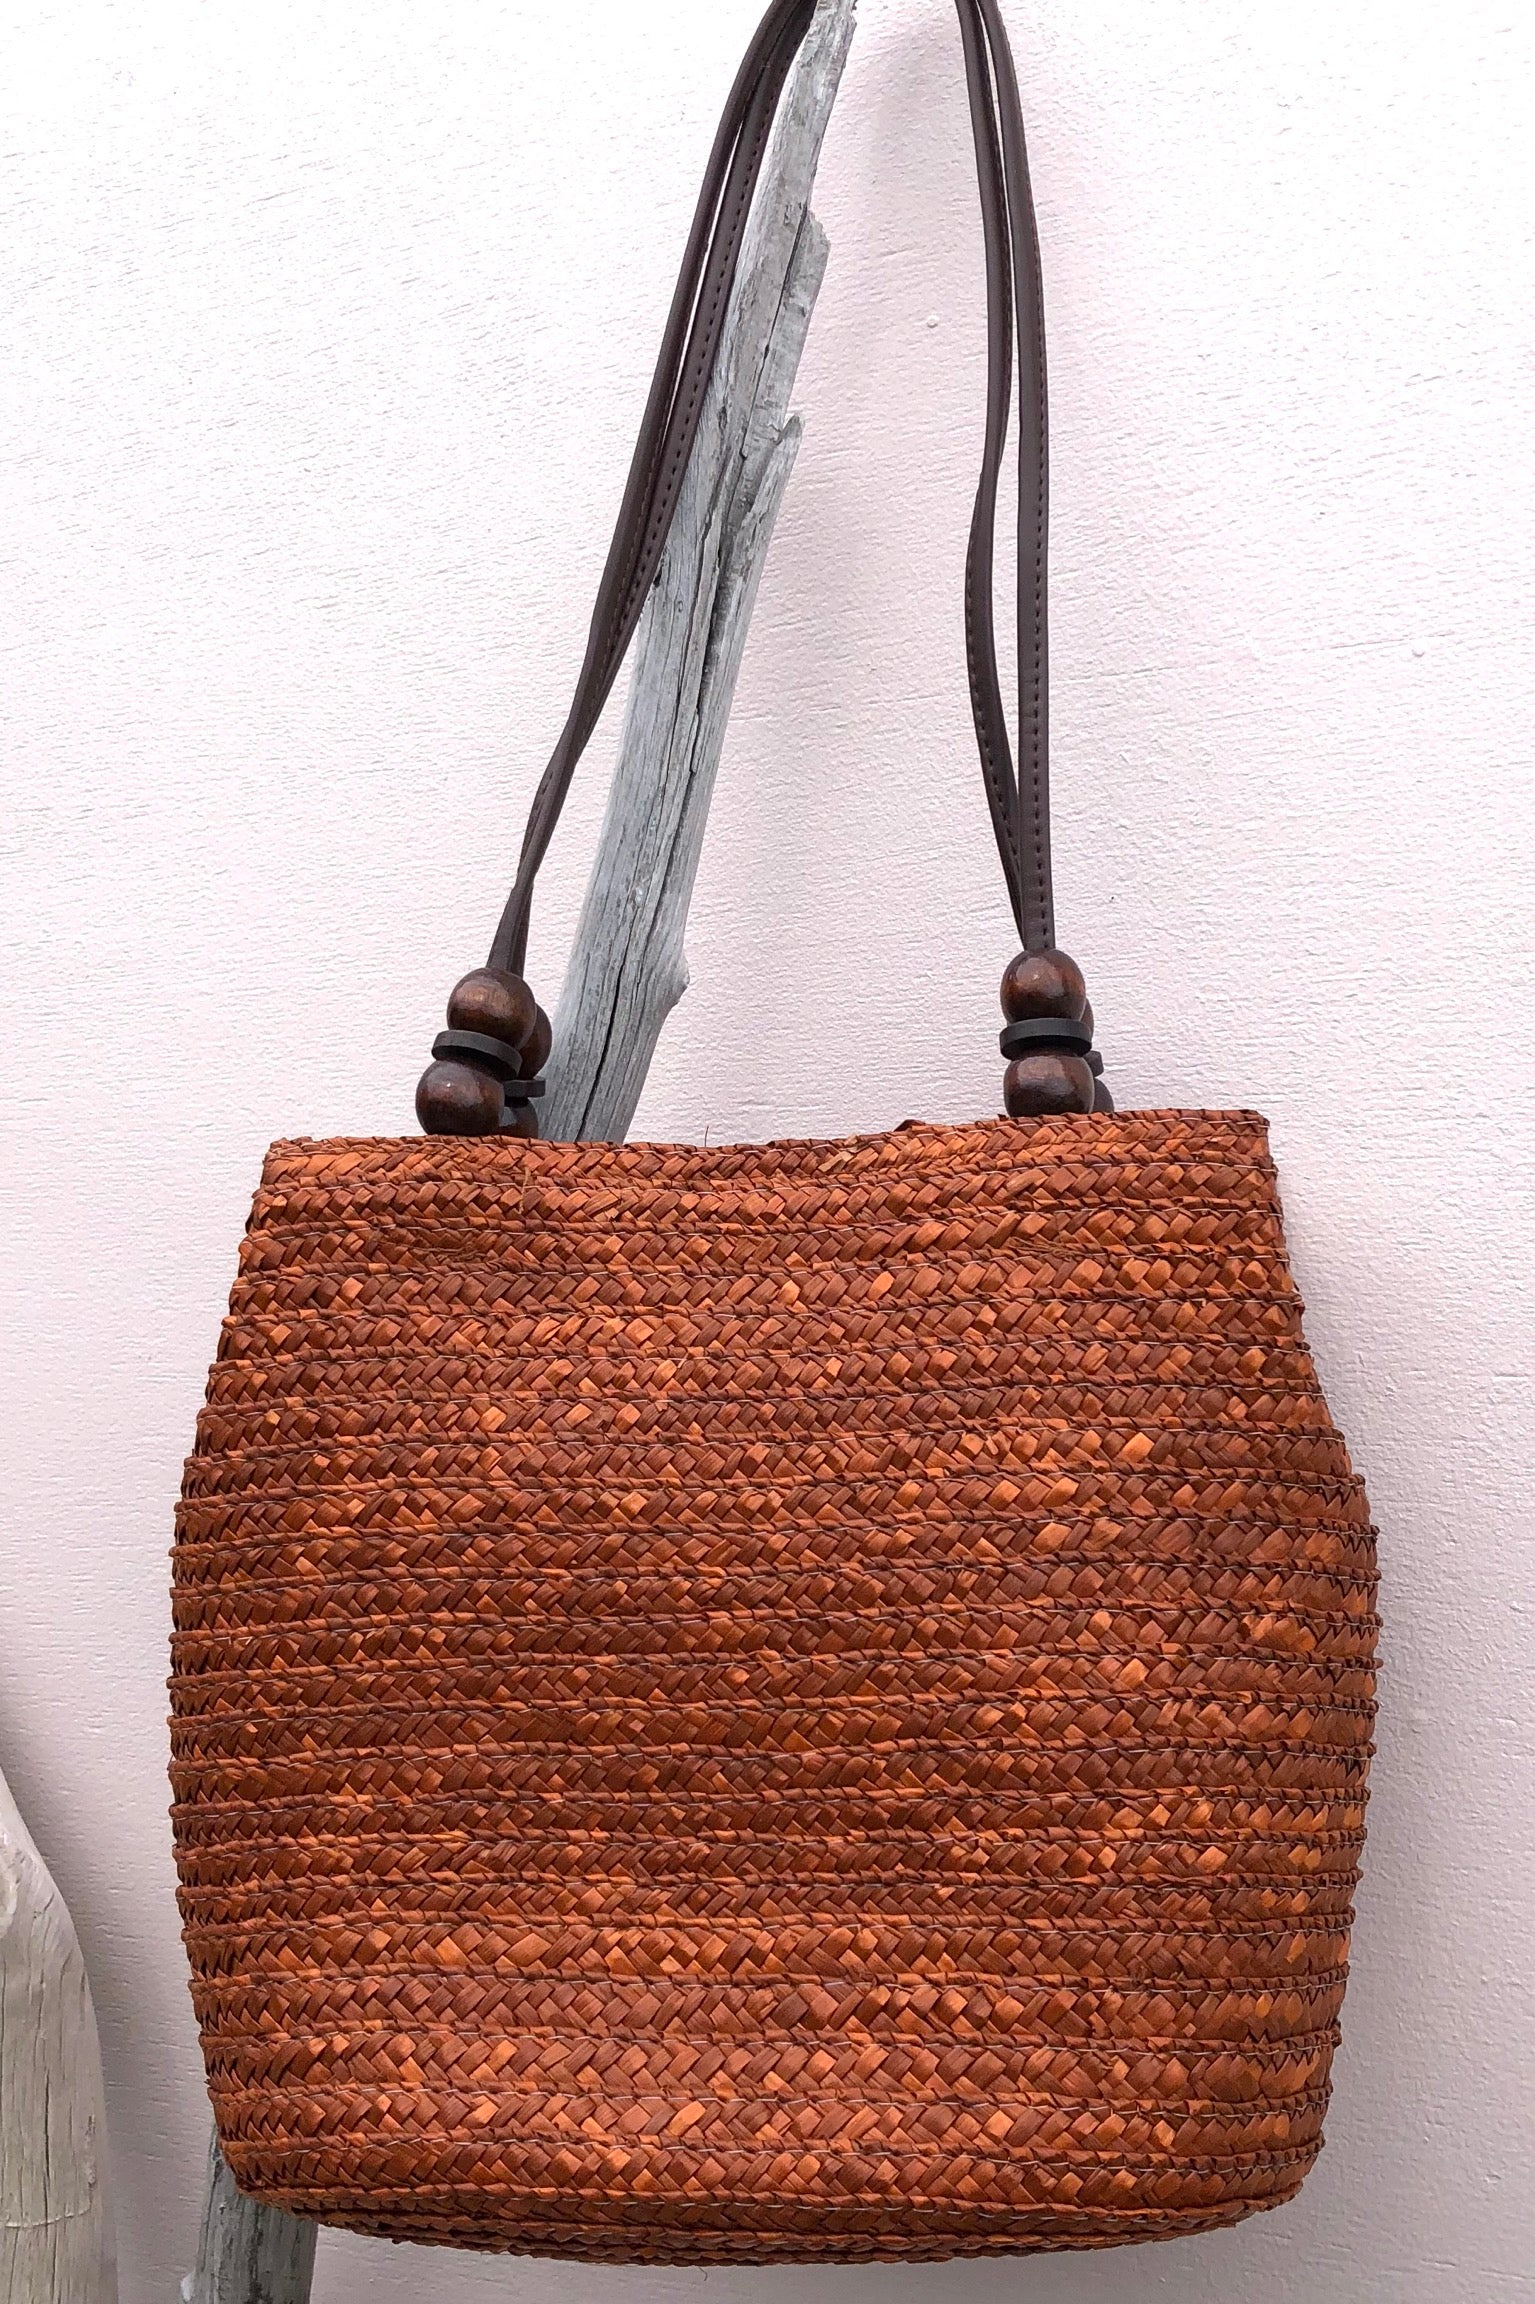 Bag Ava Palma Straw in Tan colour is a boho inspired beach style woven straw bag in a tan rust colour